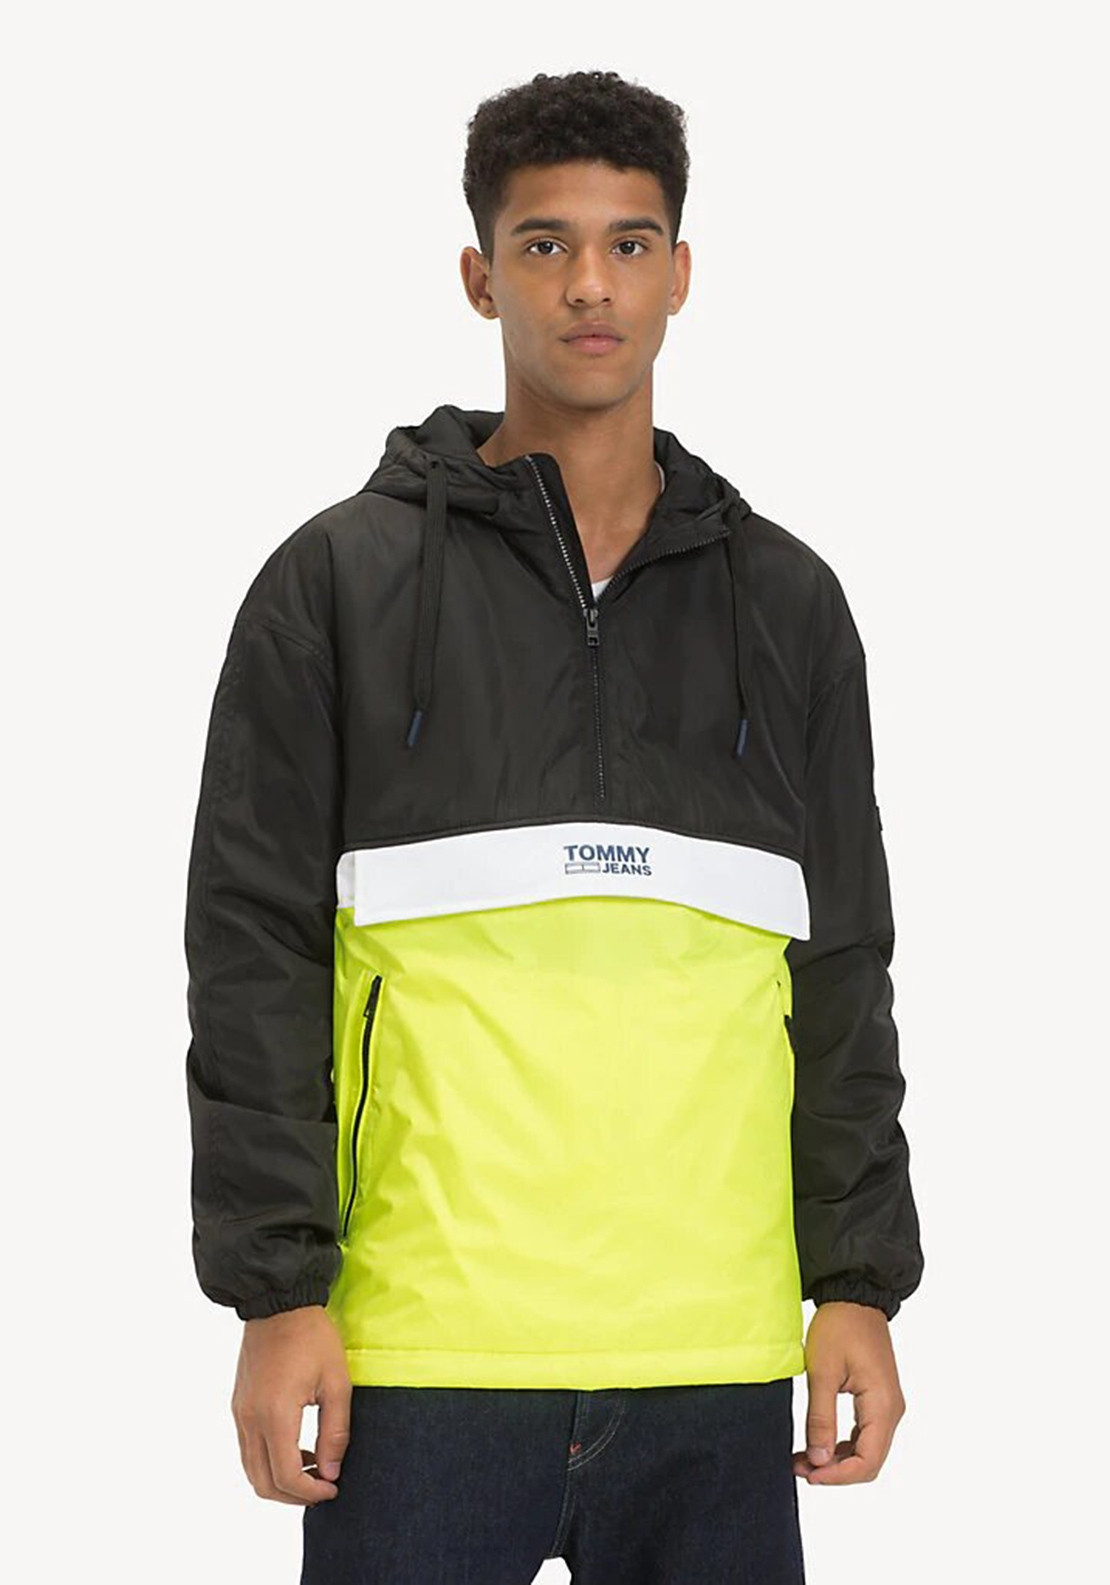 79e6cc721 Tommy Jeans ColorBlock Popover Coat, Yellow. Be the first to review this  product